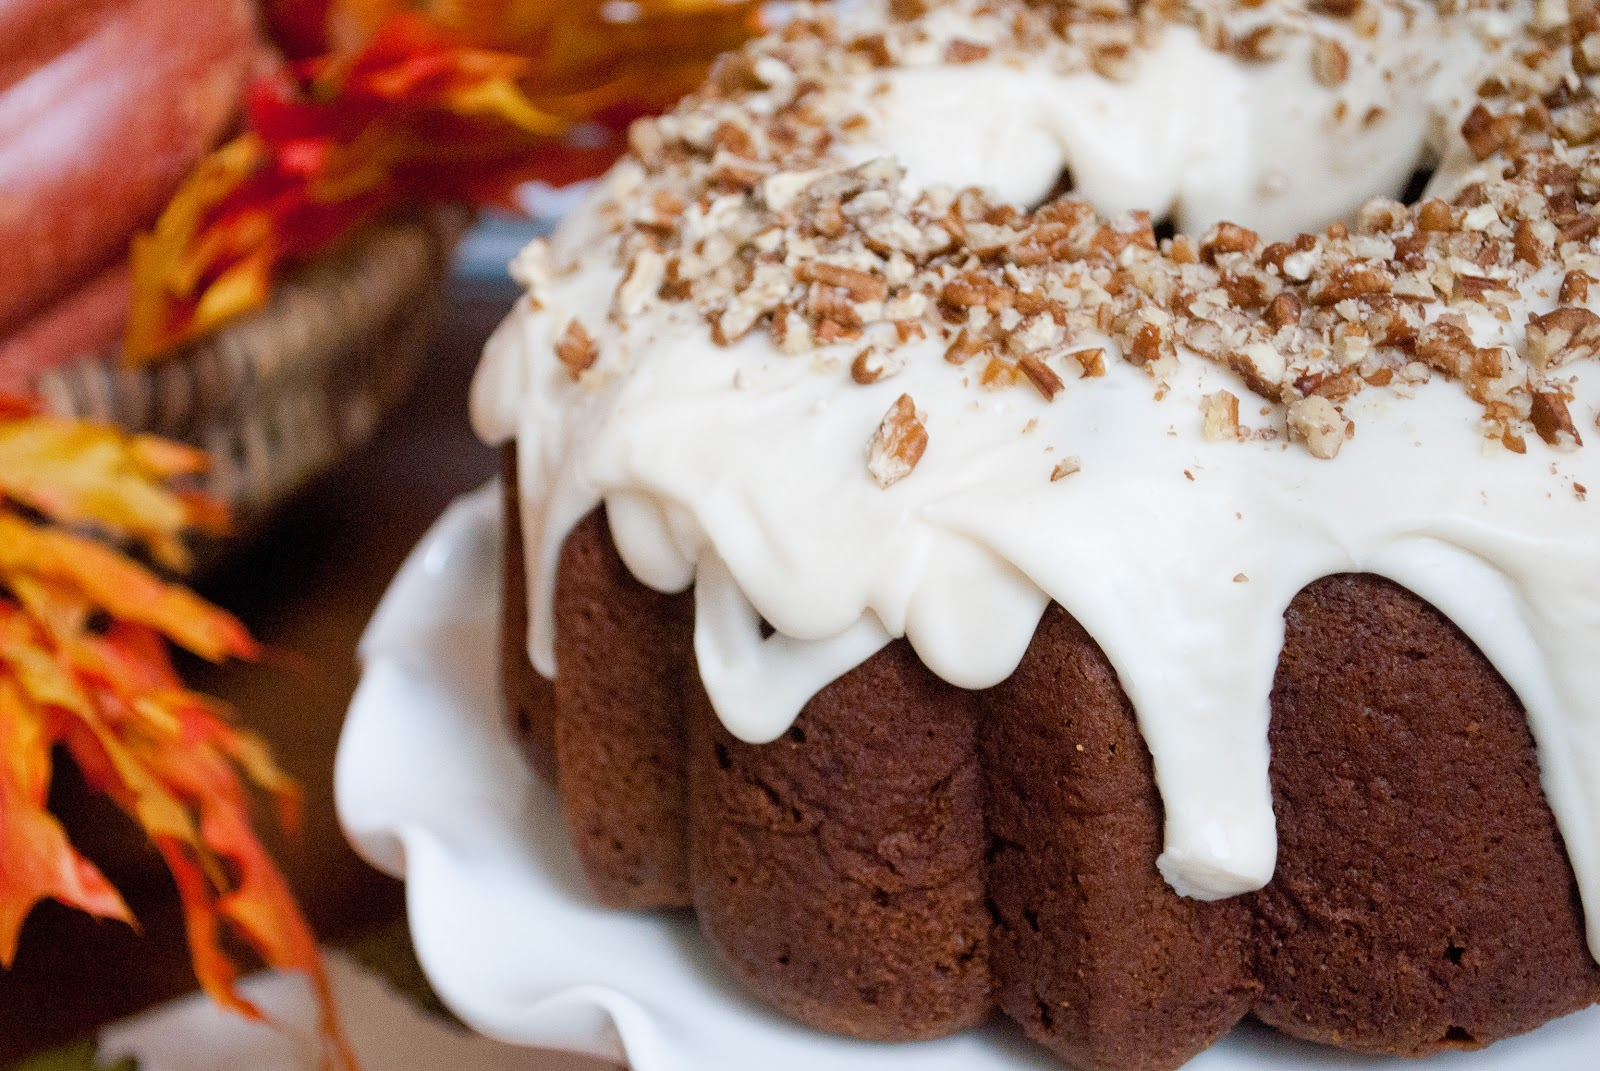 Ryan Bakes: Pumpkin Spice Bundt Cake with Cream Cheese Glaze